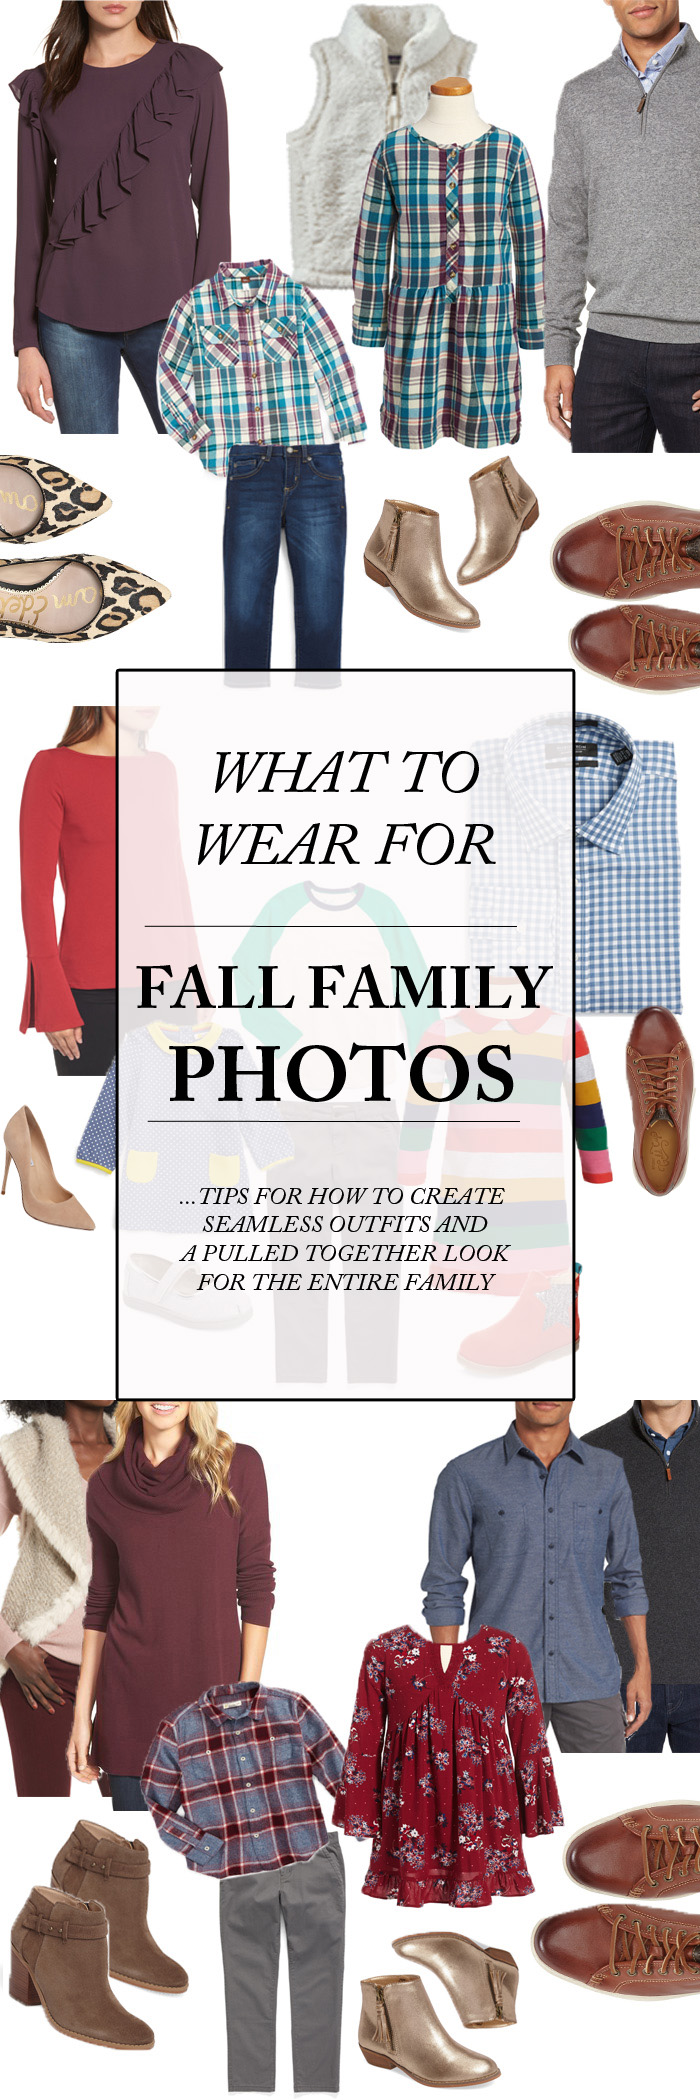 What To Wear For Family Photos - family photo style ideas